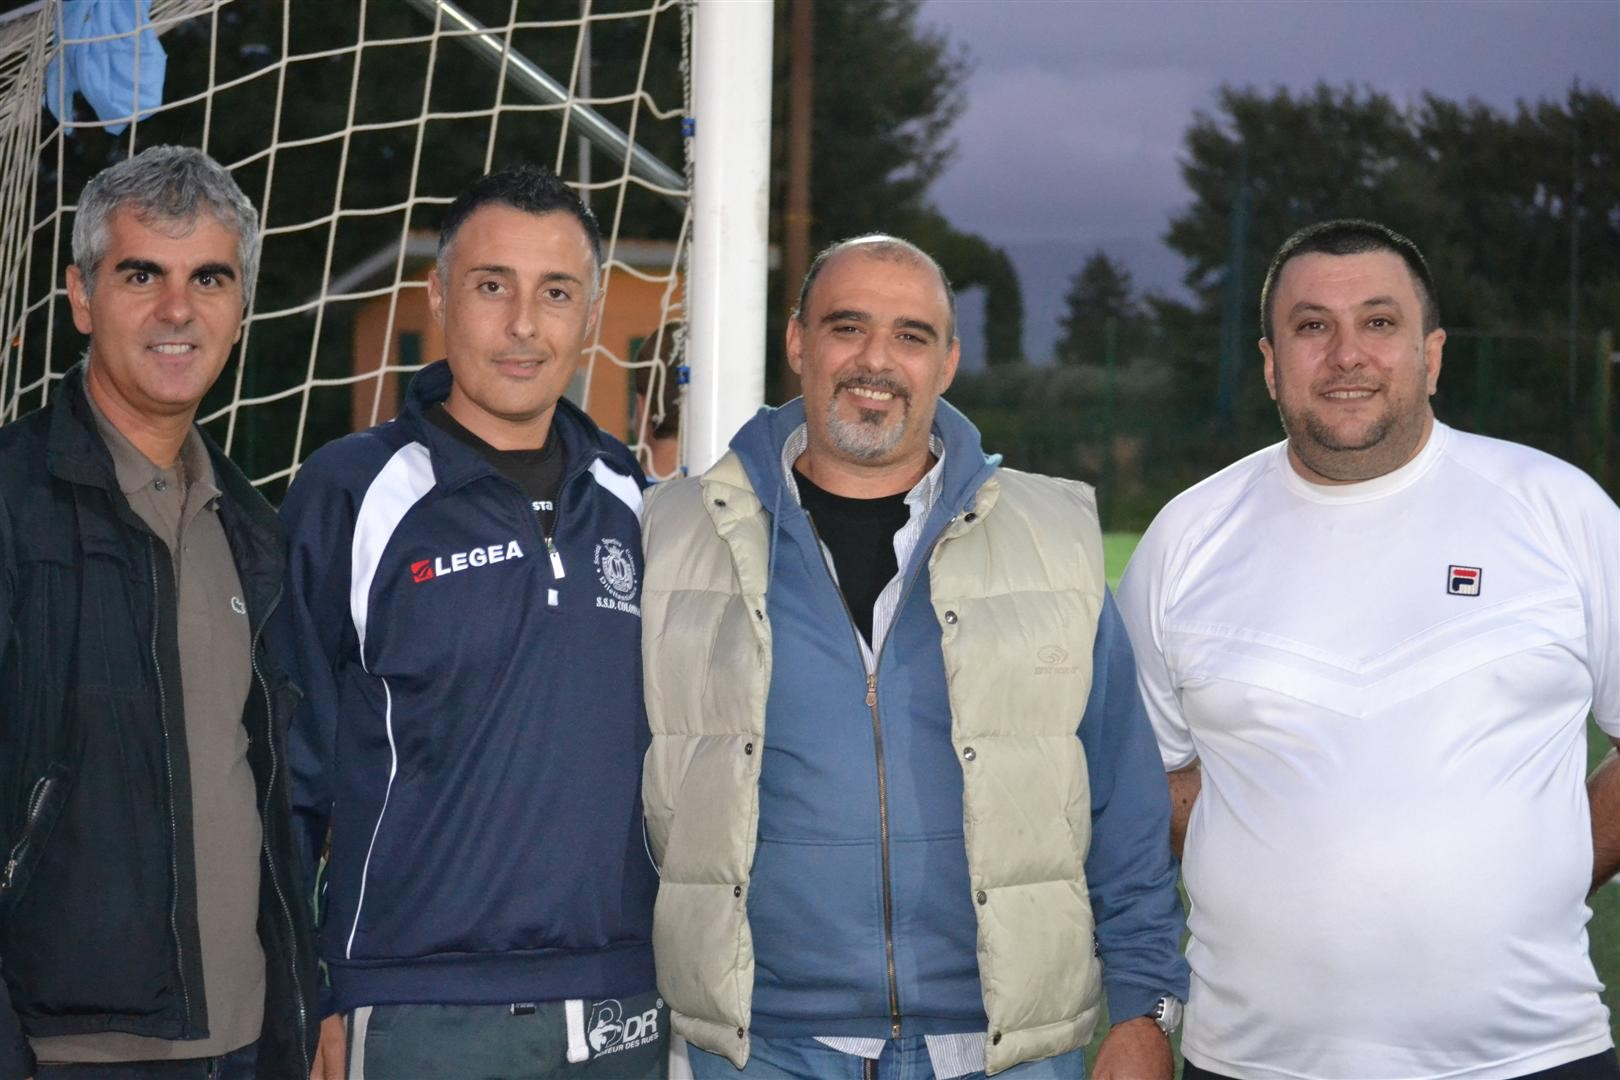 Staff tecnico Colonna calcio